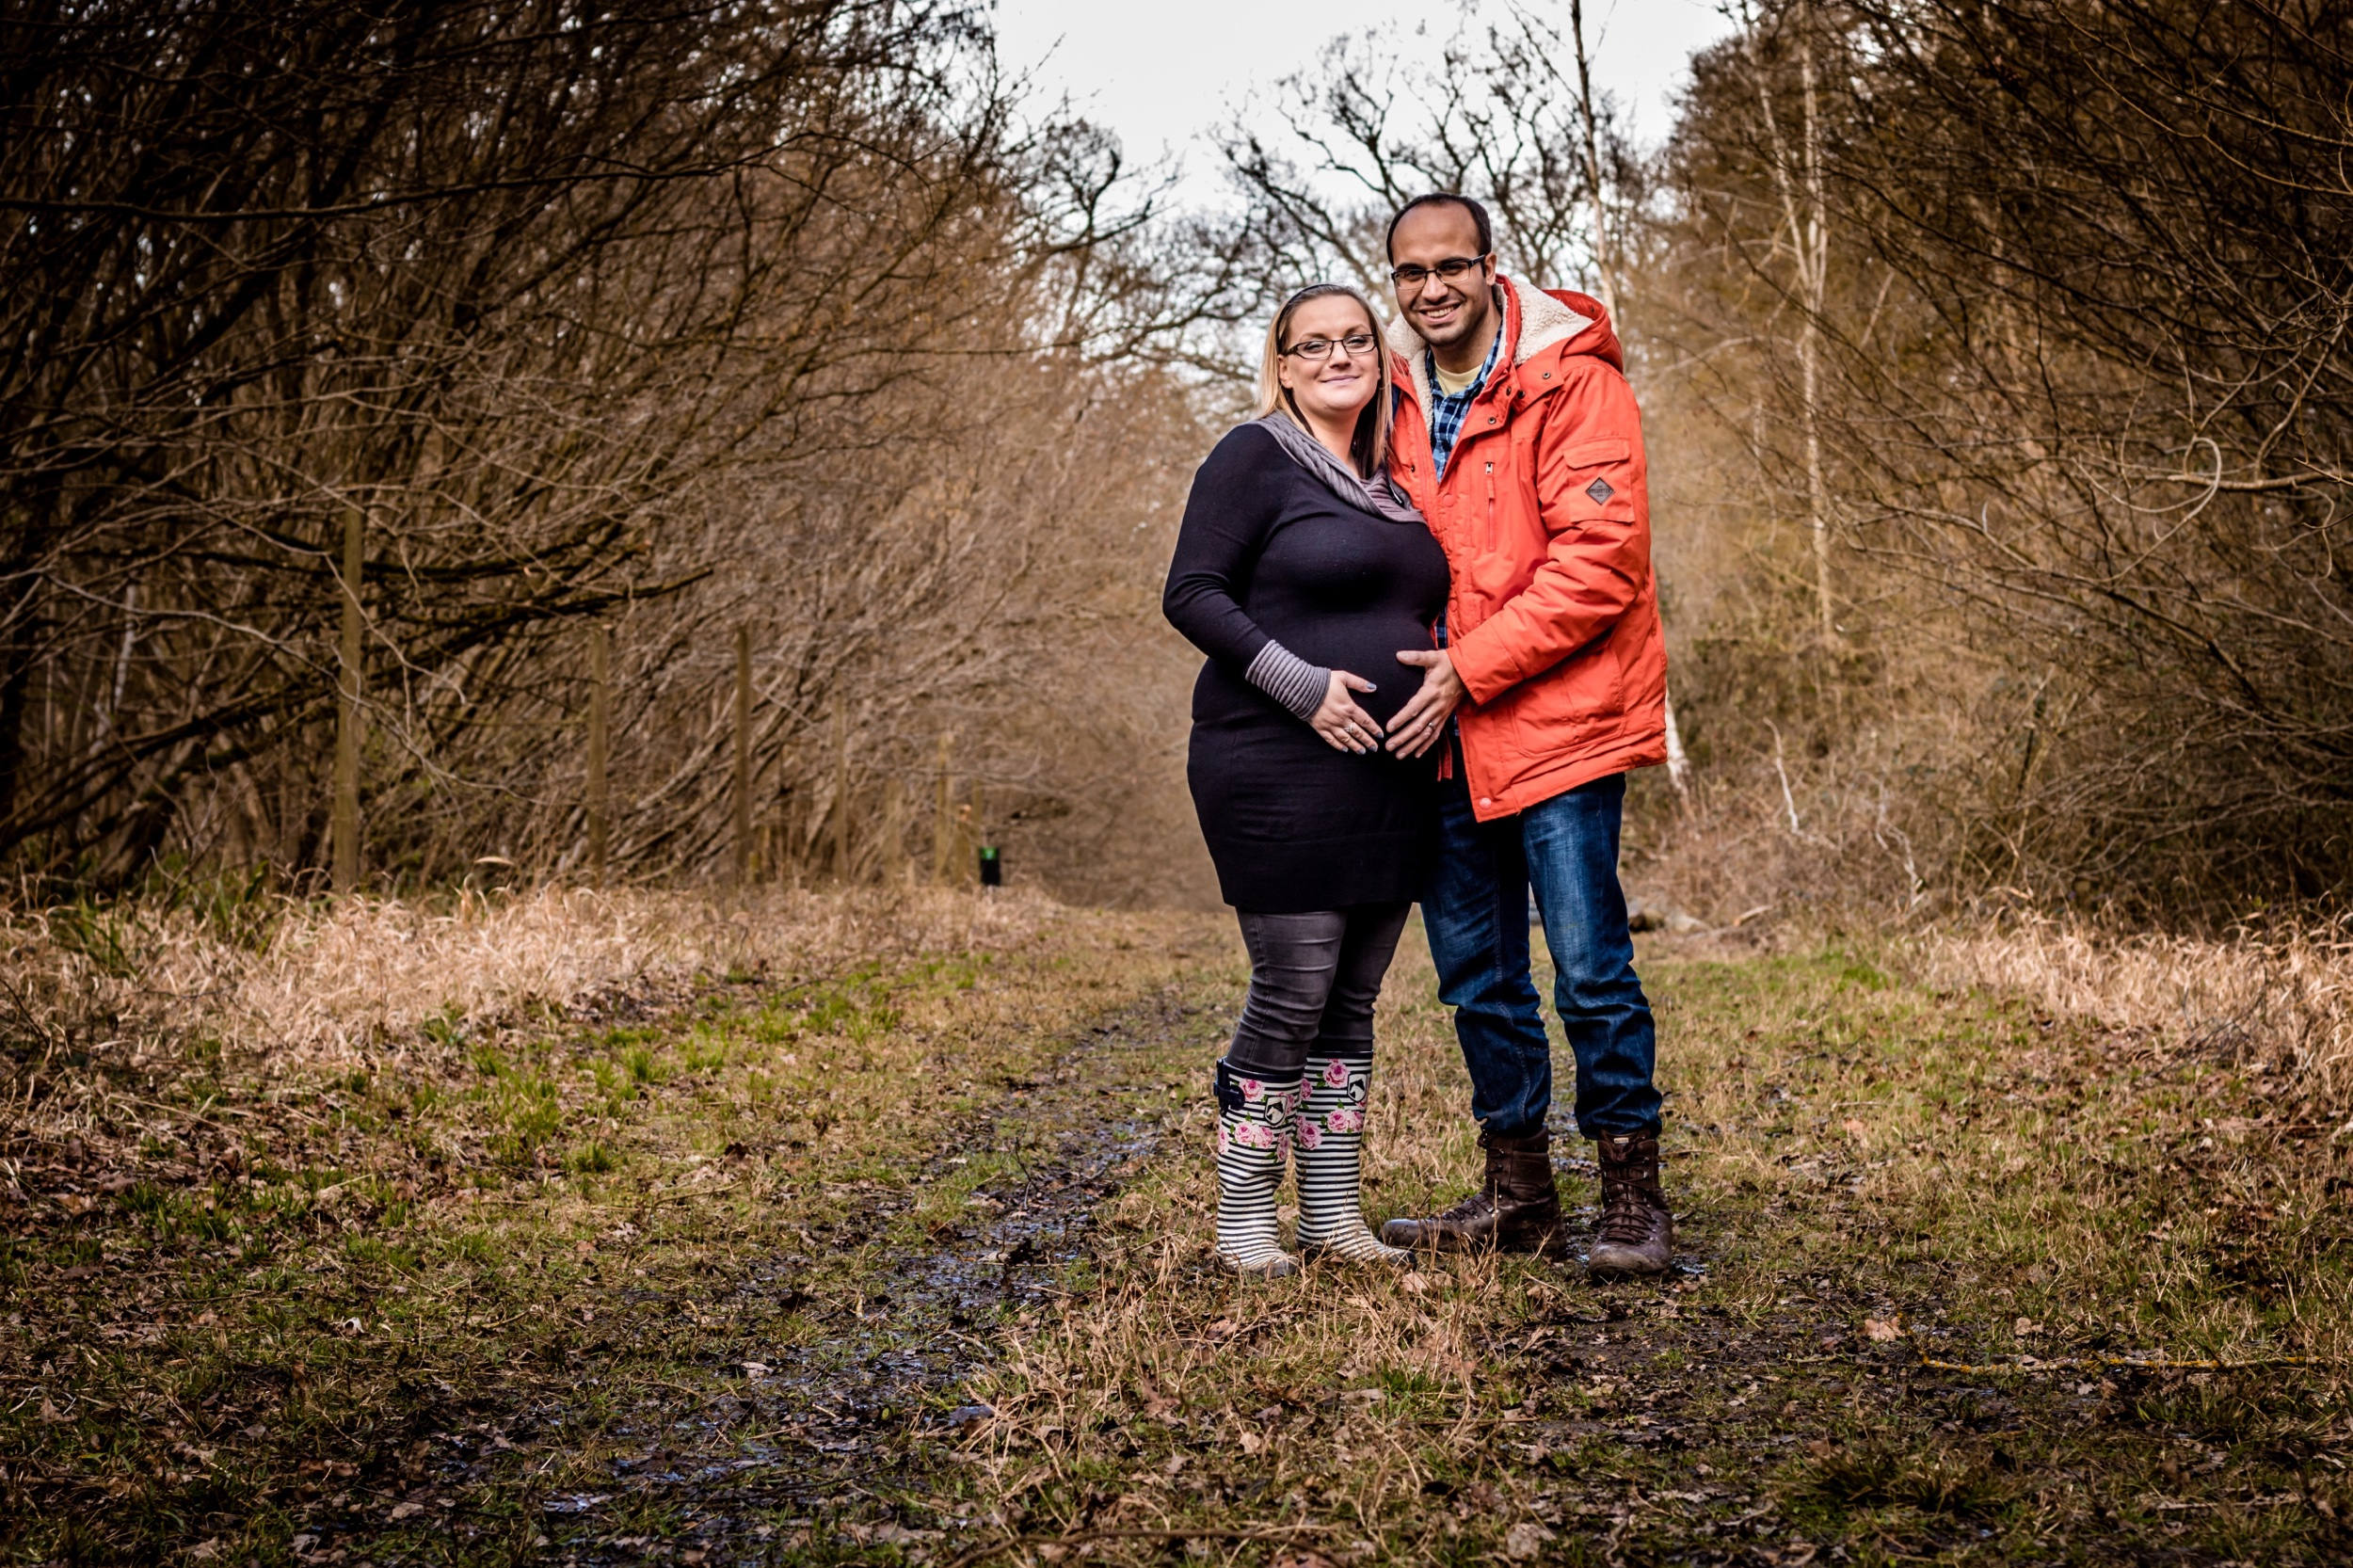 Maternity Photography - Maternity or family sessions also available, don't hesitate to request more information on those too.